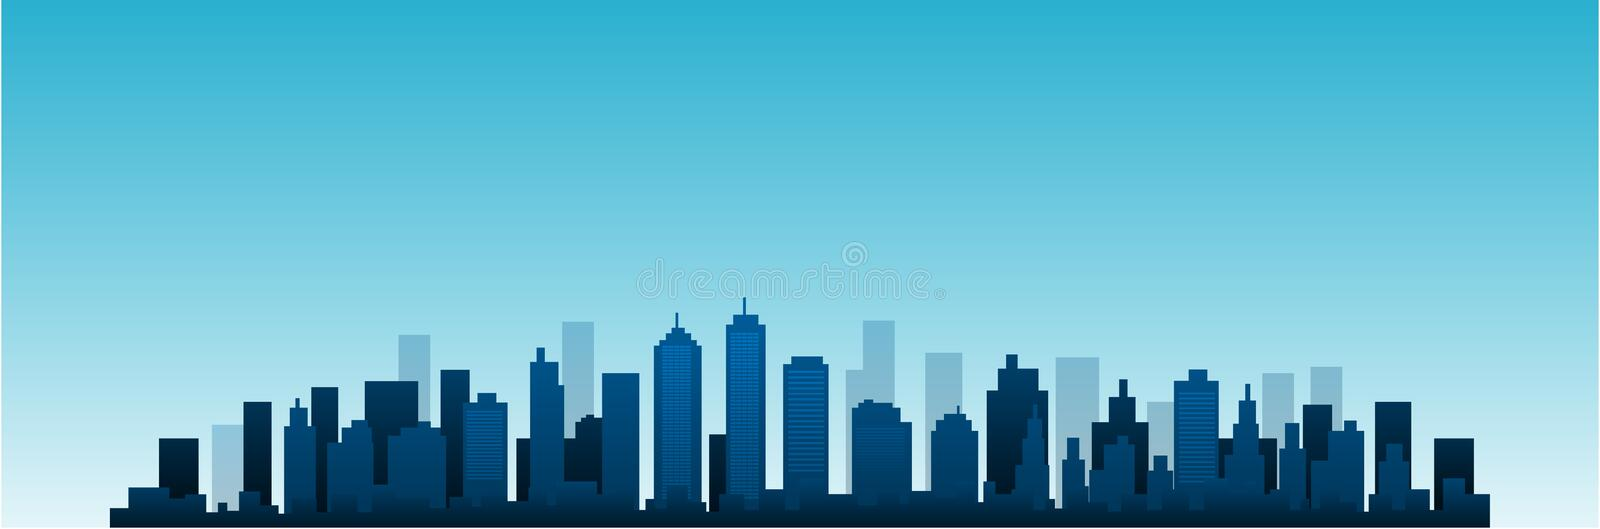 CItyscape vector city skyline at day stock illustration